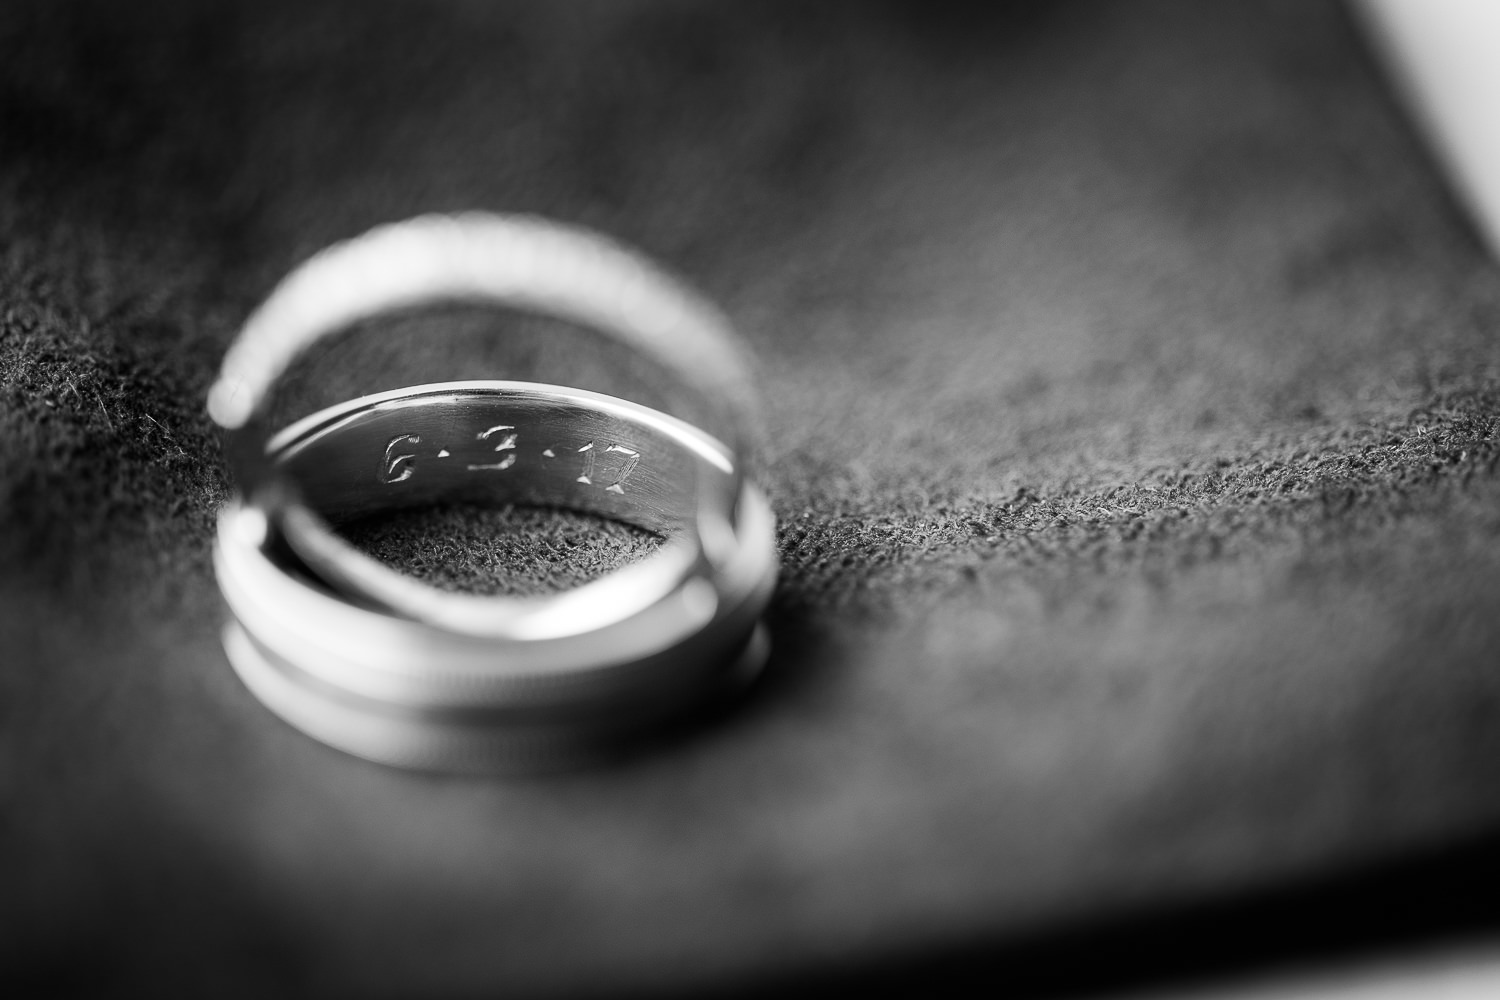 A detail photo of the couple's wedding bands at Jay Peak Resort by Stina Booth wedding photography Vermont